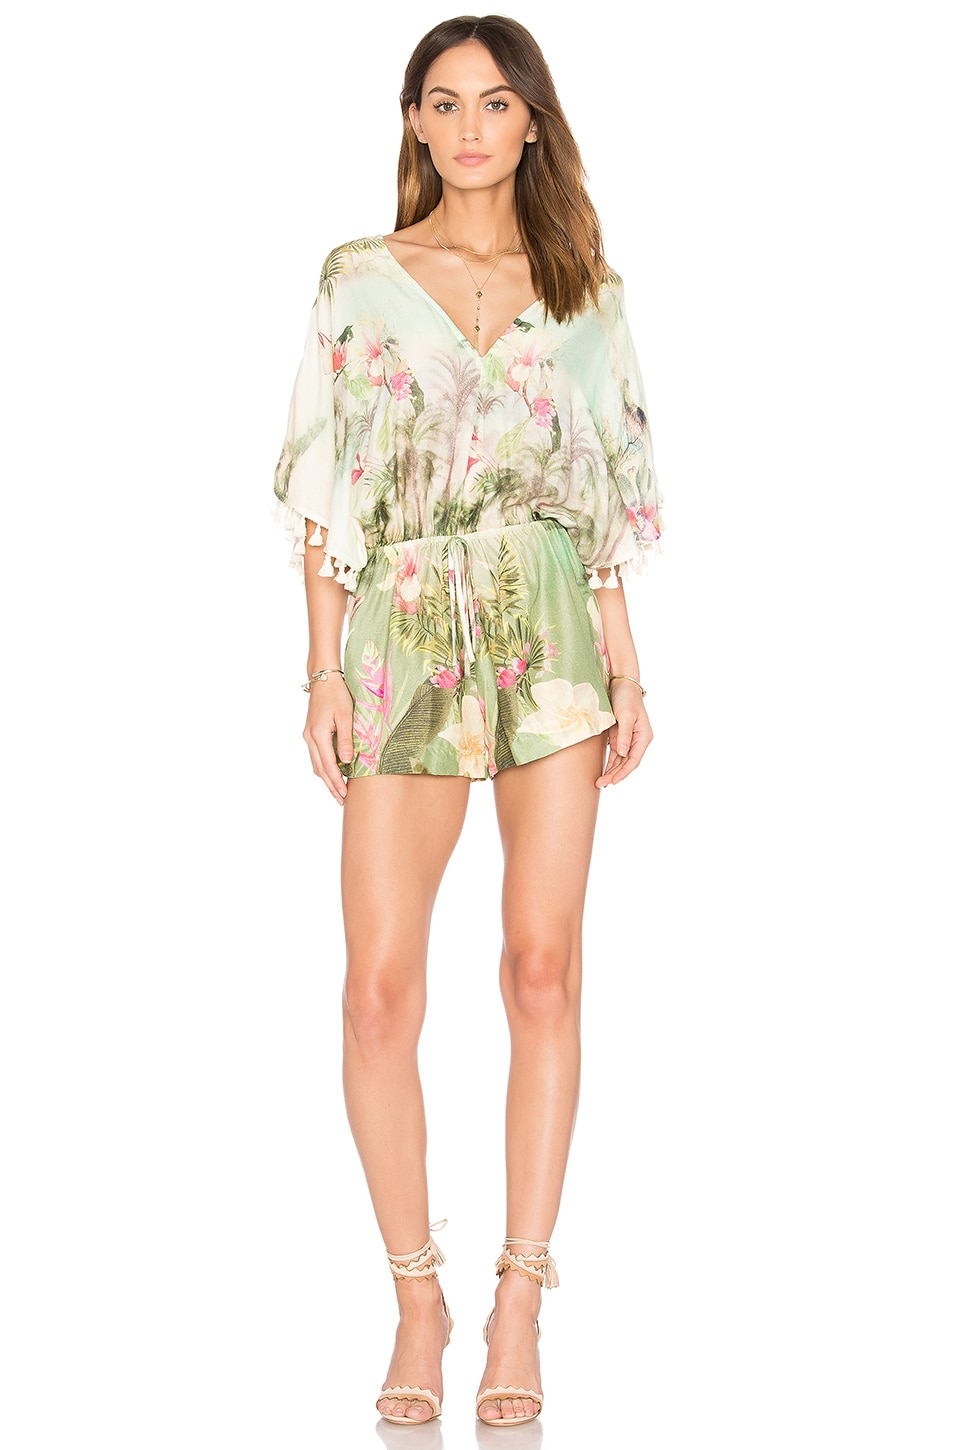 Summer Freshness Romper by Farm